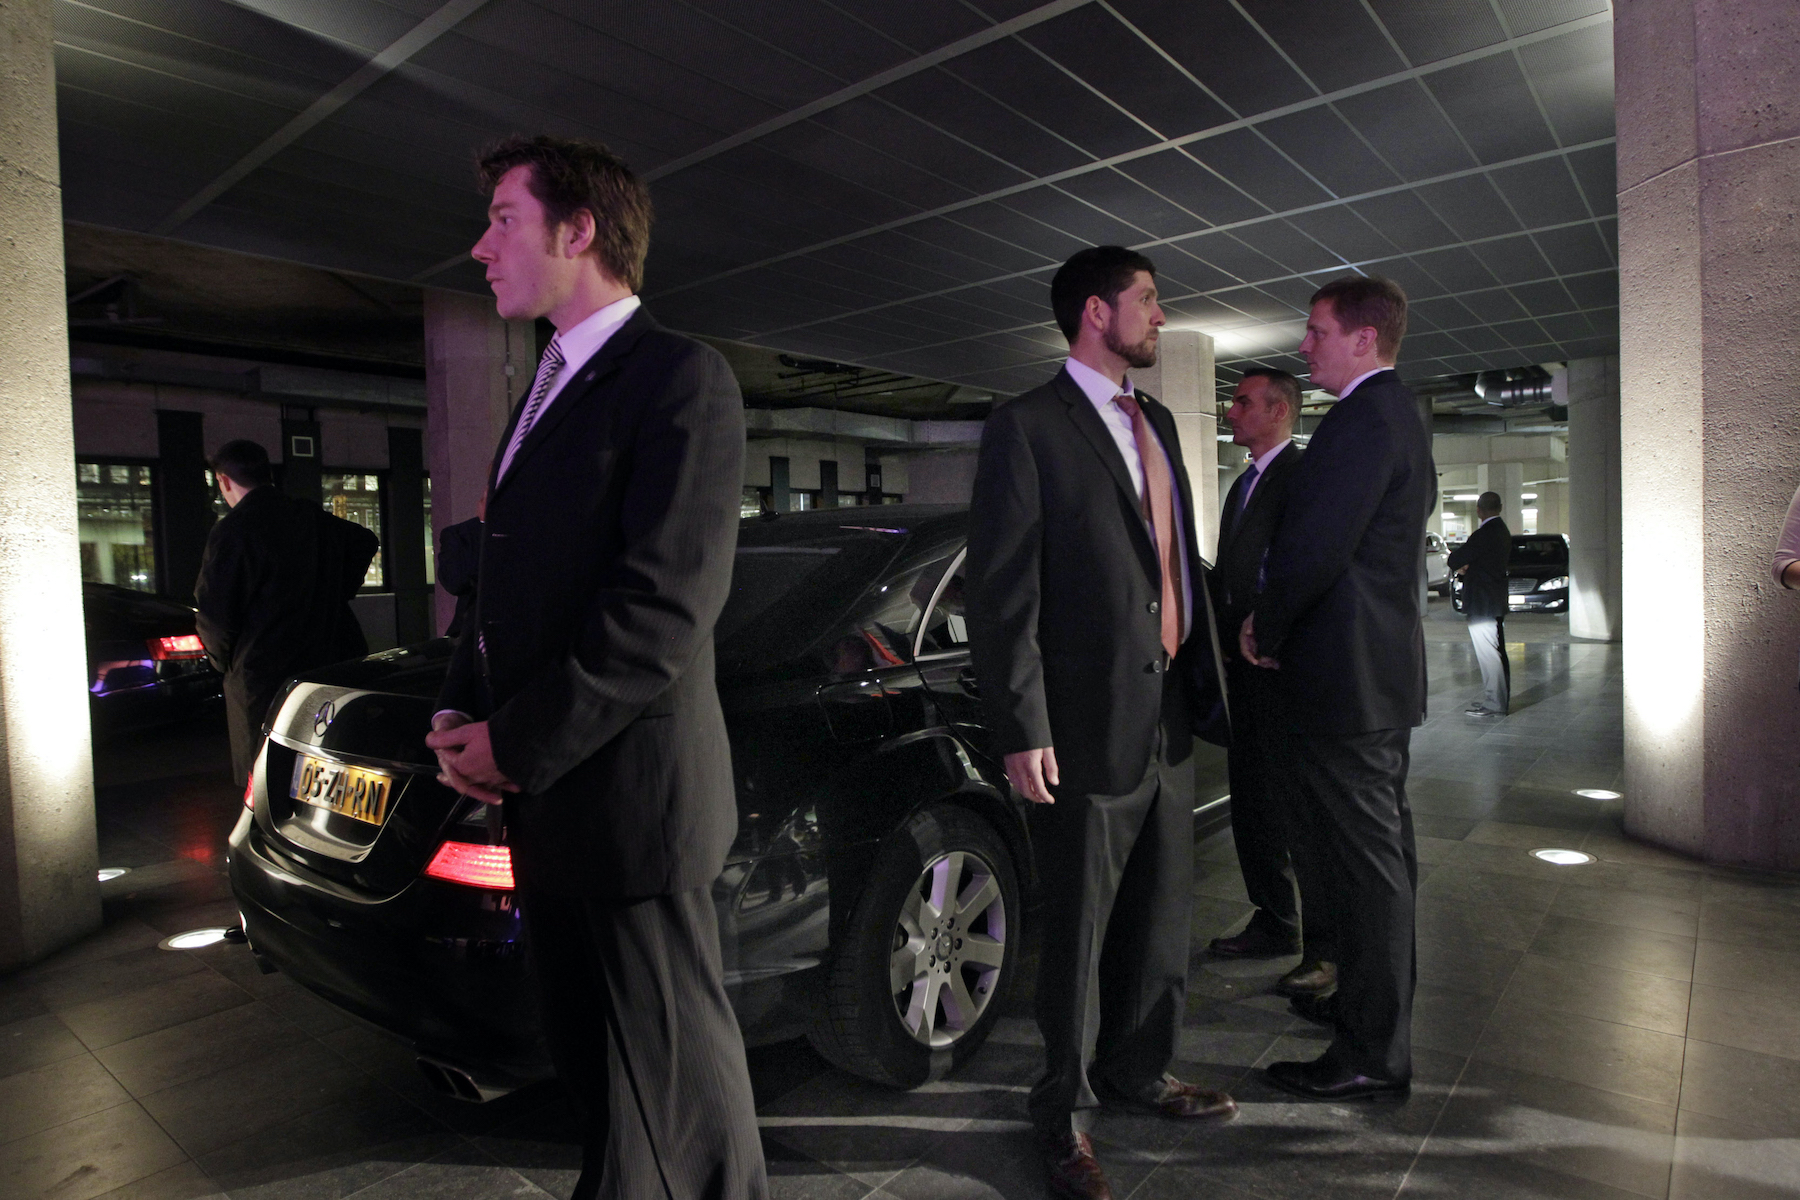 U.S. security agents stand guard at the limo of US Secretary of State